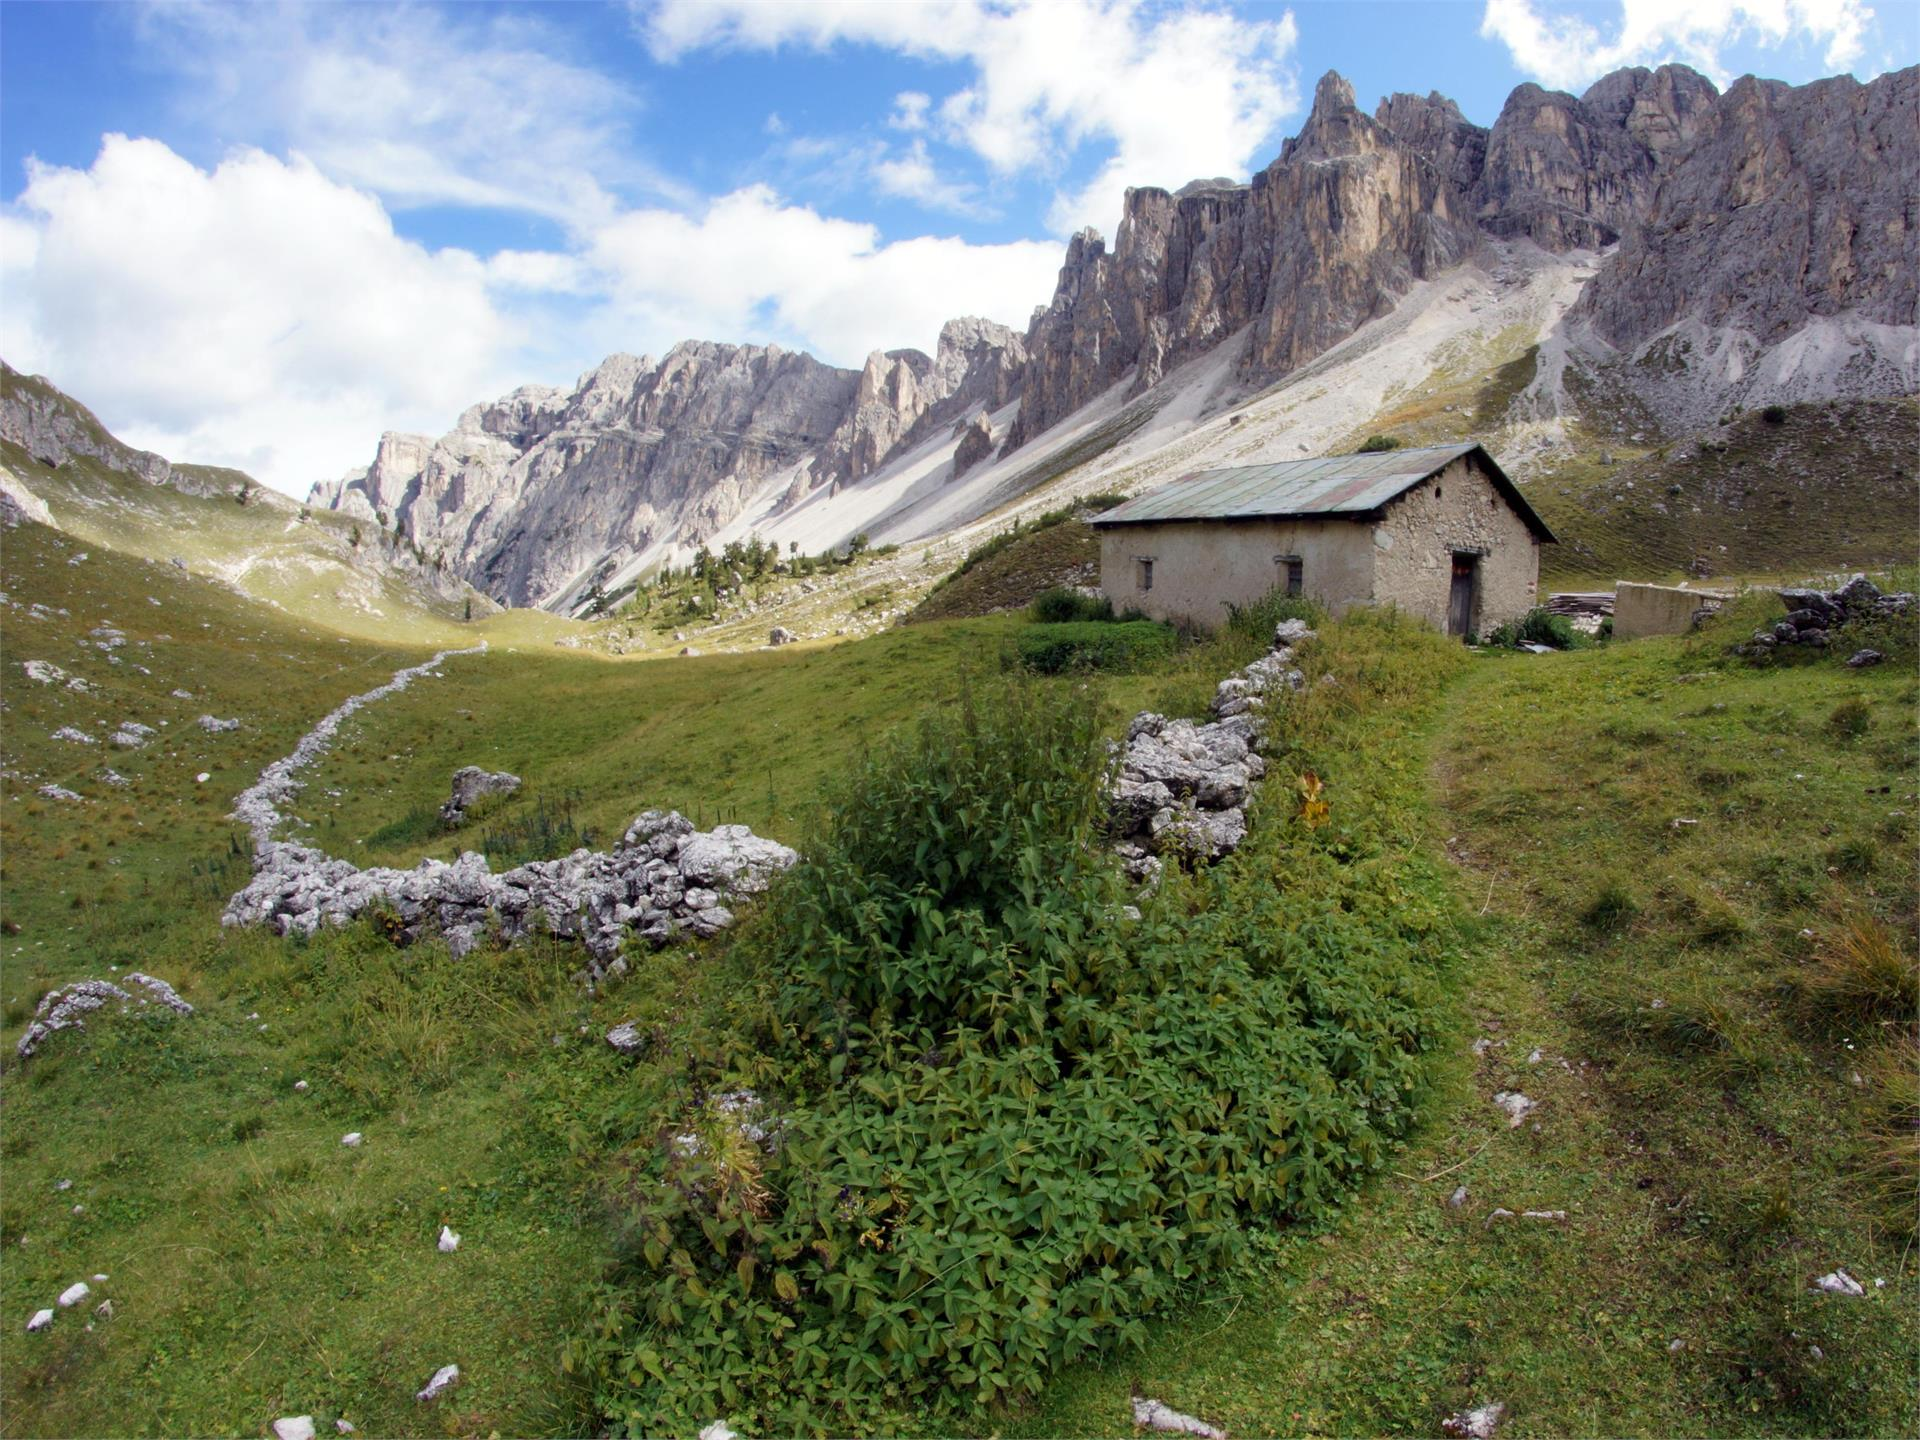 Excursion to the Antersasc Alp and the Crep dales Dodesc peak